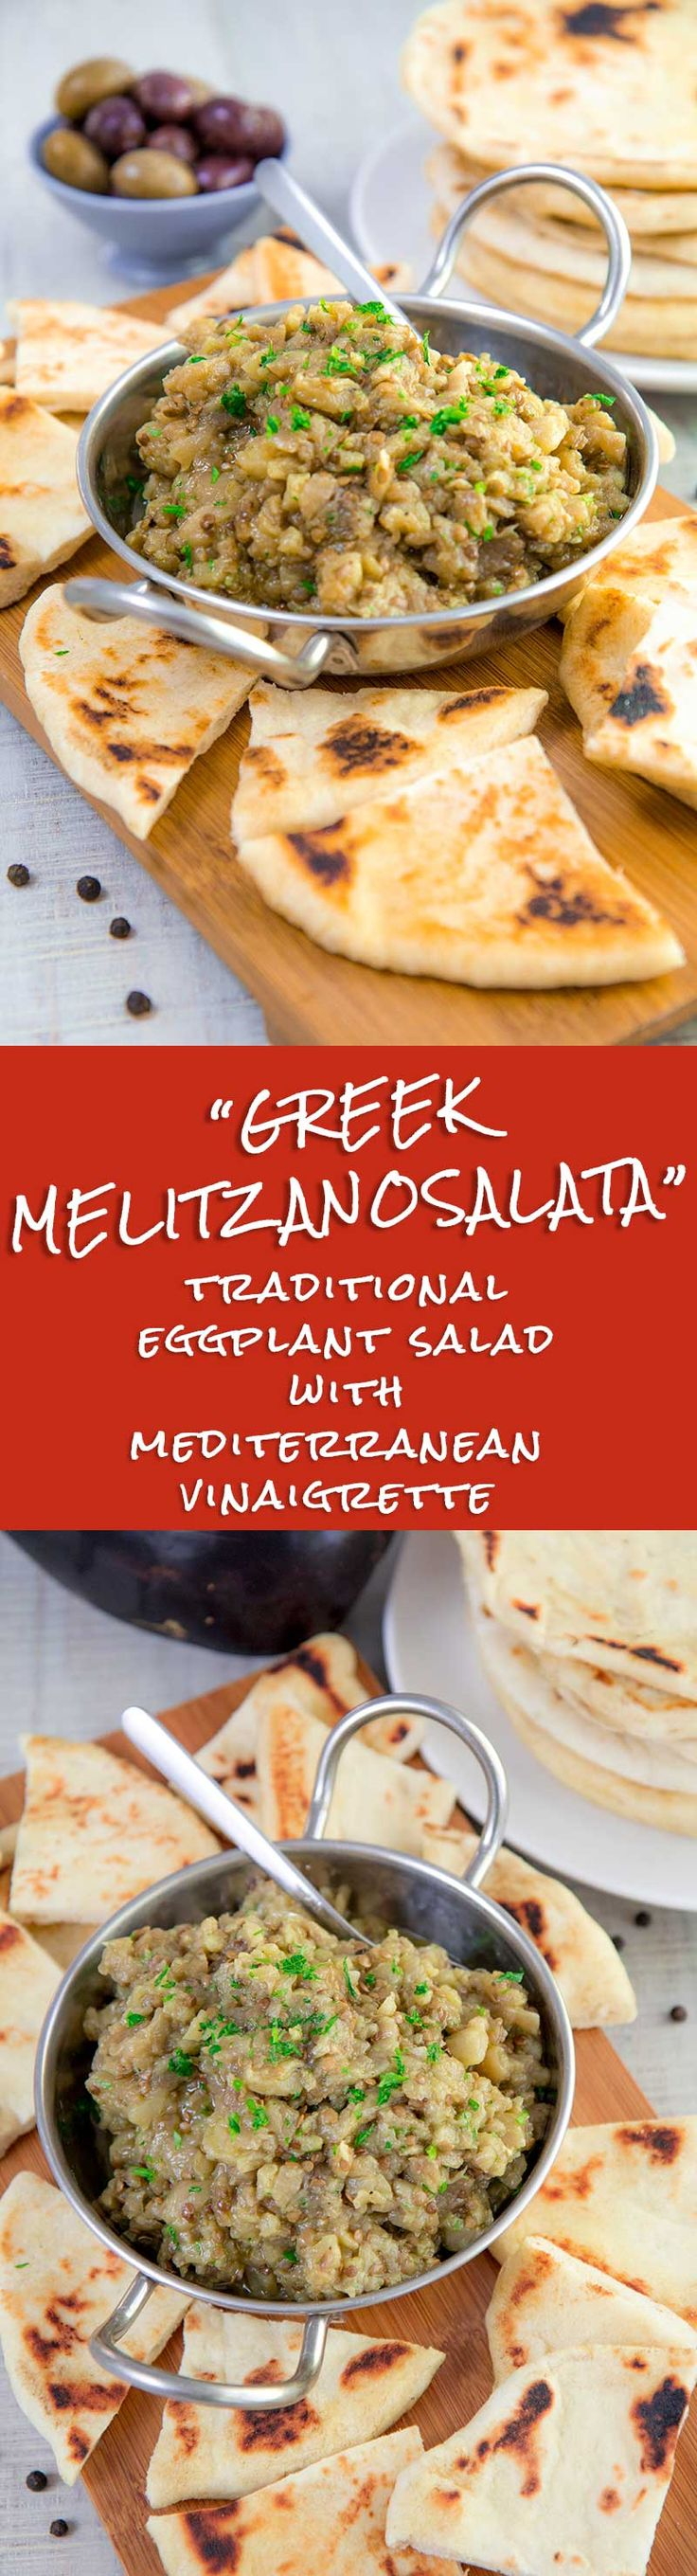 MELITZANOSALATA - traditional Greek eggplant salad recipe - Melitzanosalata is a tasty Greek appetizer traditionally served aside meats, pita bread, and other sauces. This eggplant salad is a delicious and healthy starter, but it also a perfect ingredient for a sandwich or a Pita Gyro. I love preparing this vegan small plate along with Tzatziki sauce, Souvlaki, and Greek salad. Tags: Mediterranean, comfort food, healthy recipes, family dinner, aubergines, vegan, vegetarian, dip, Gyro, Greece